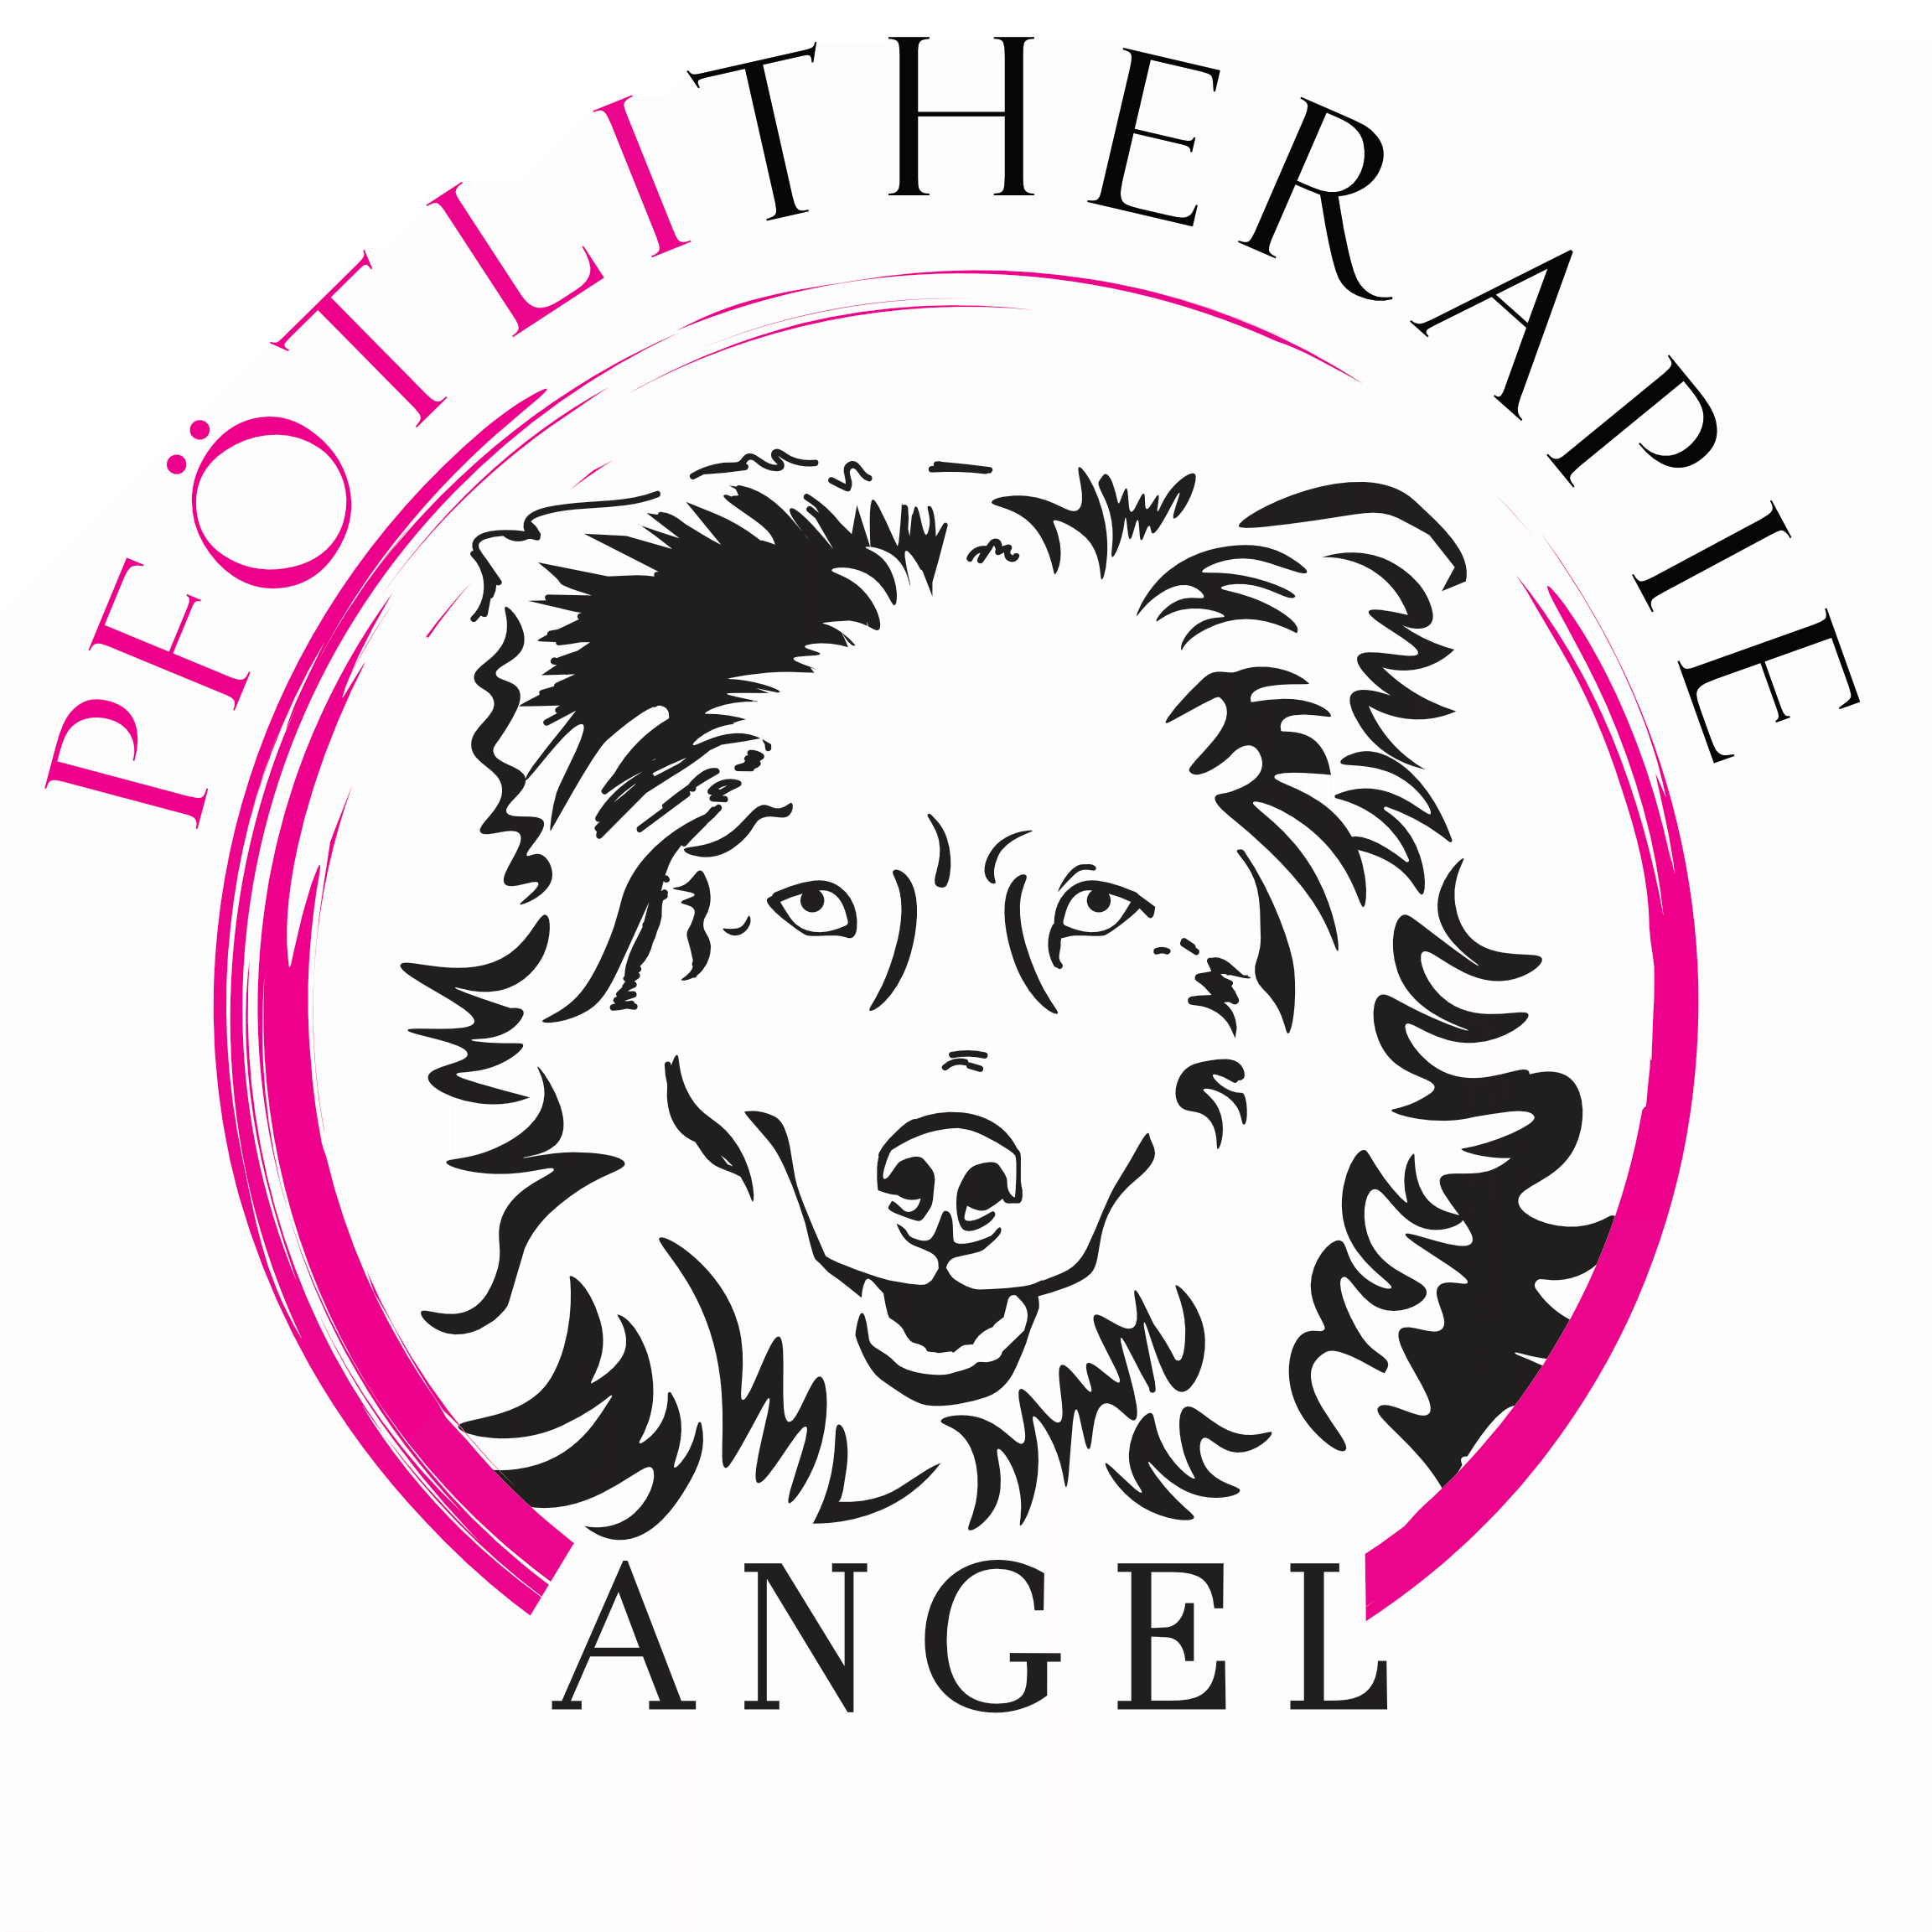 Pfötlitherapie Angel